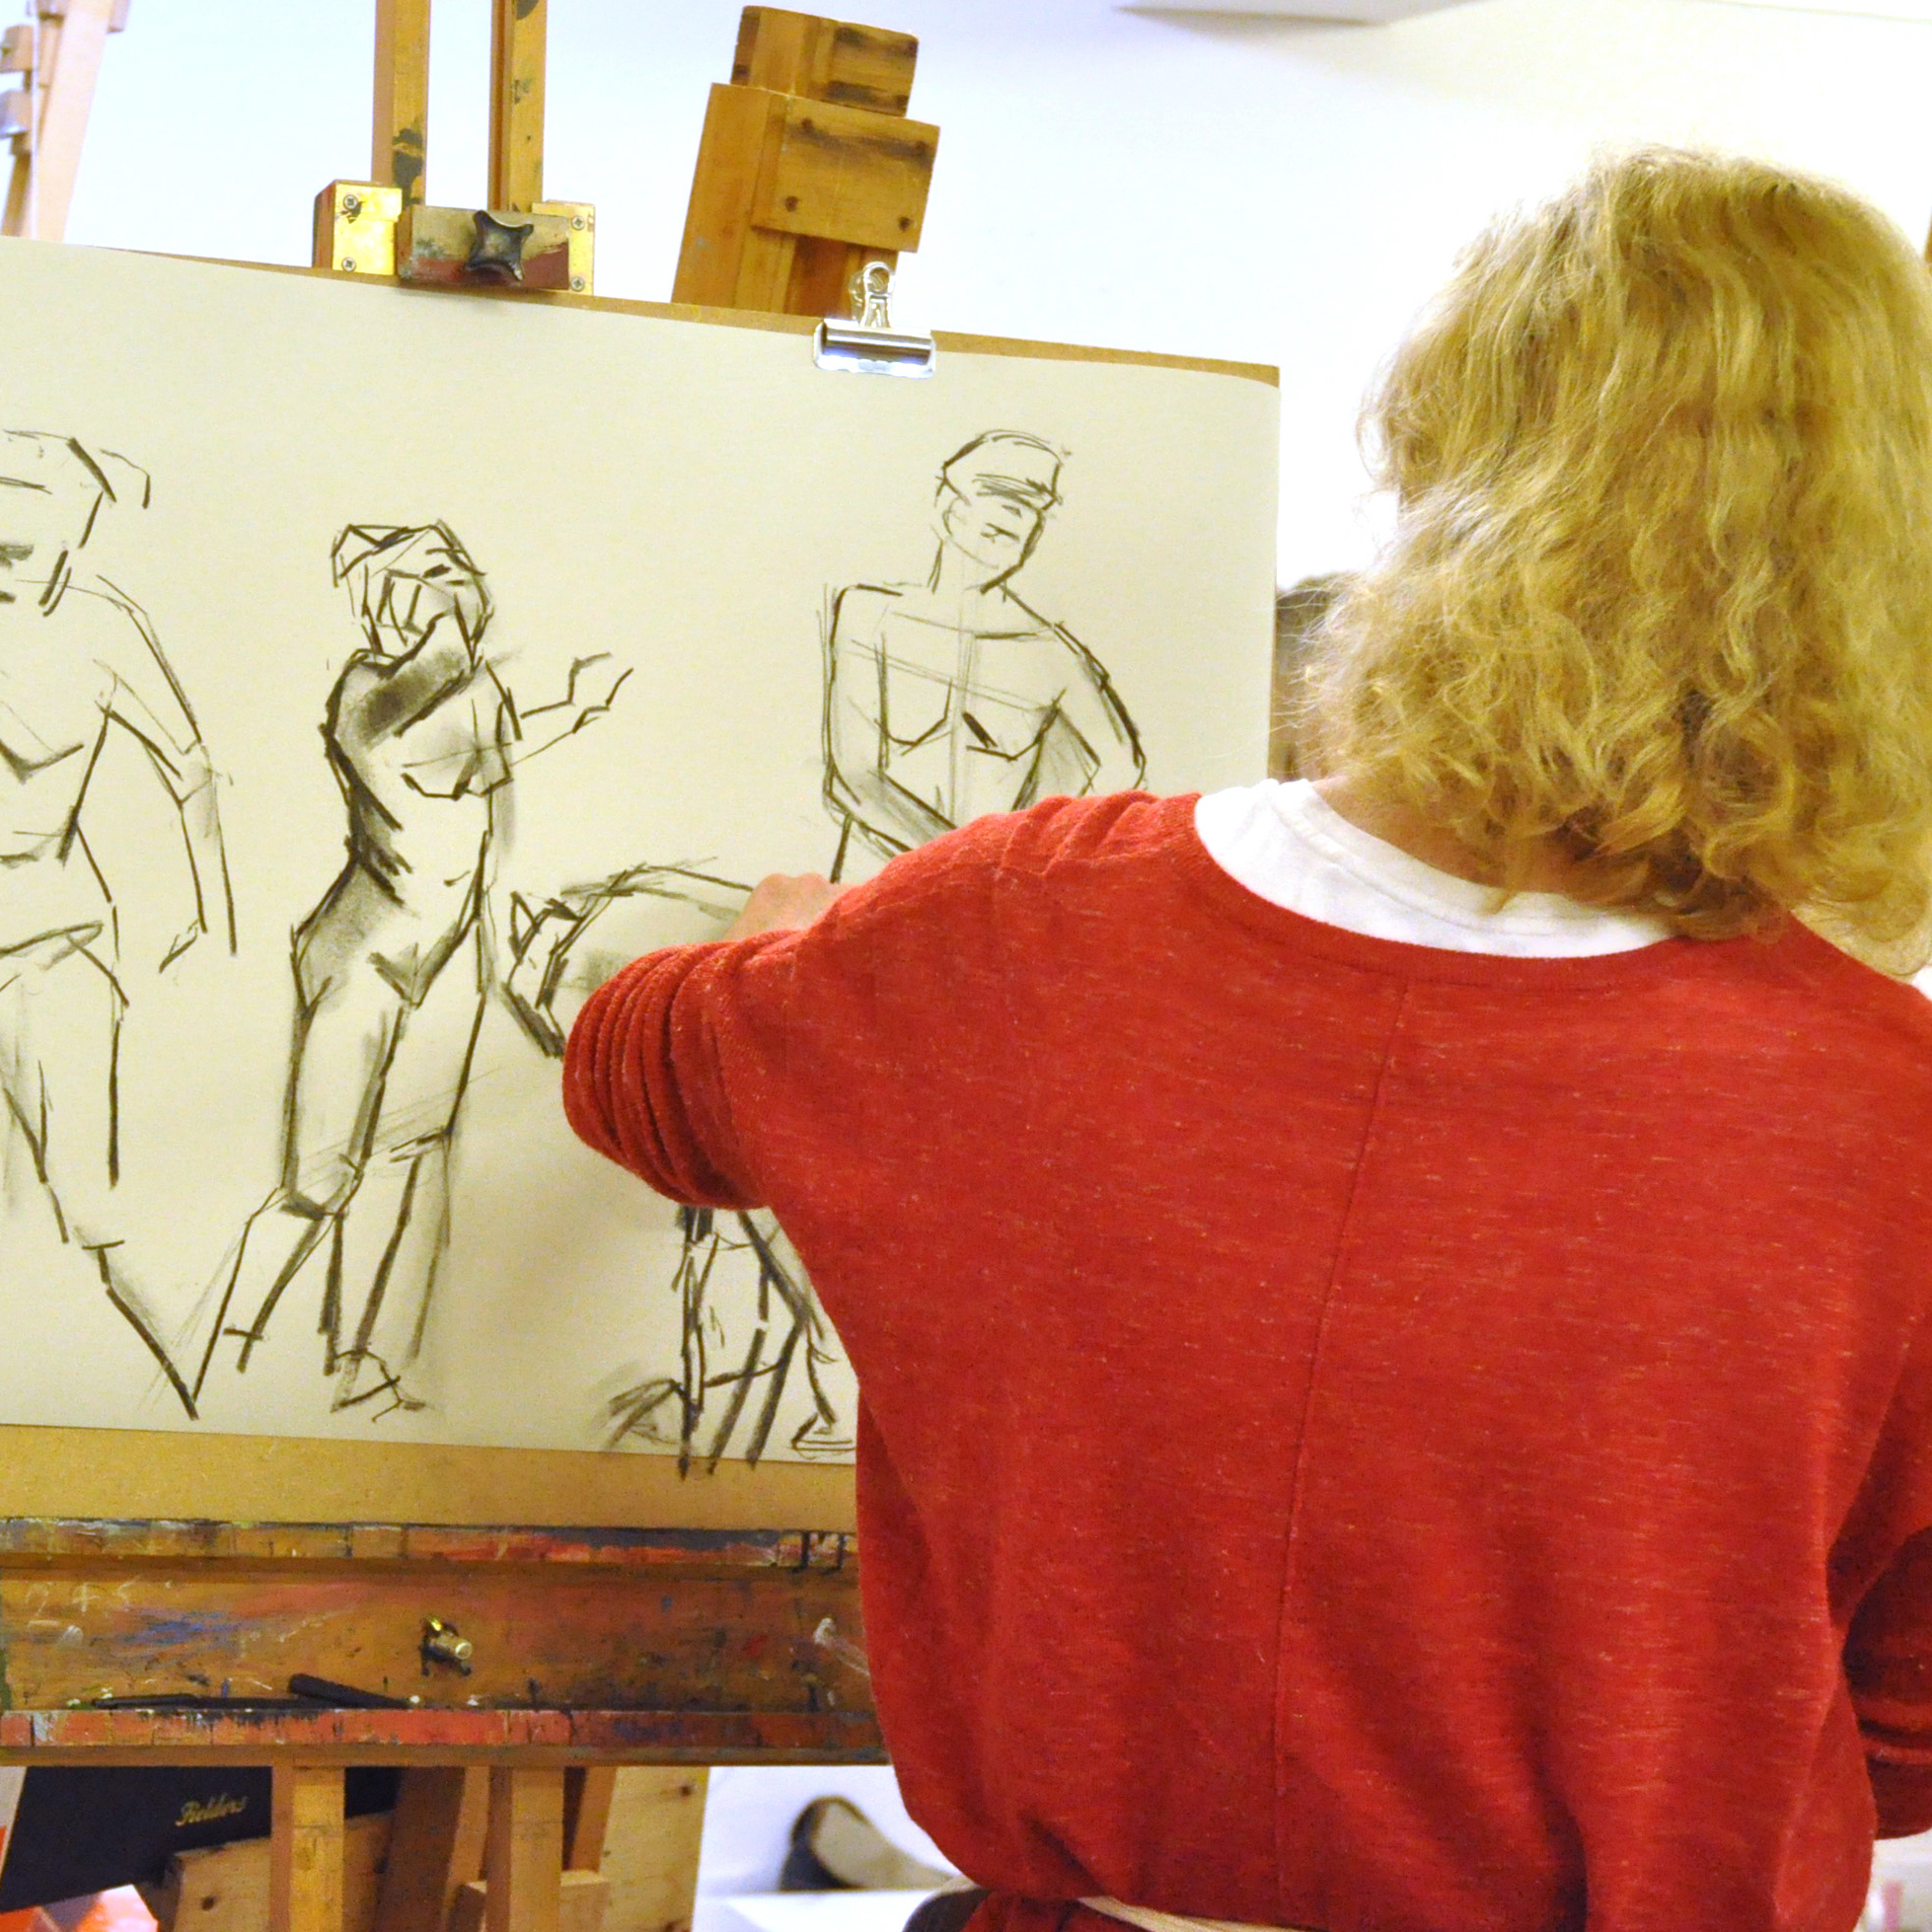 Life drawing & oil painting with Idun Eustace - Idun's popular life drawing classes will return this Spring and she's currently taking bookings for oil painting courses.